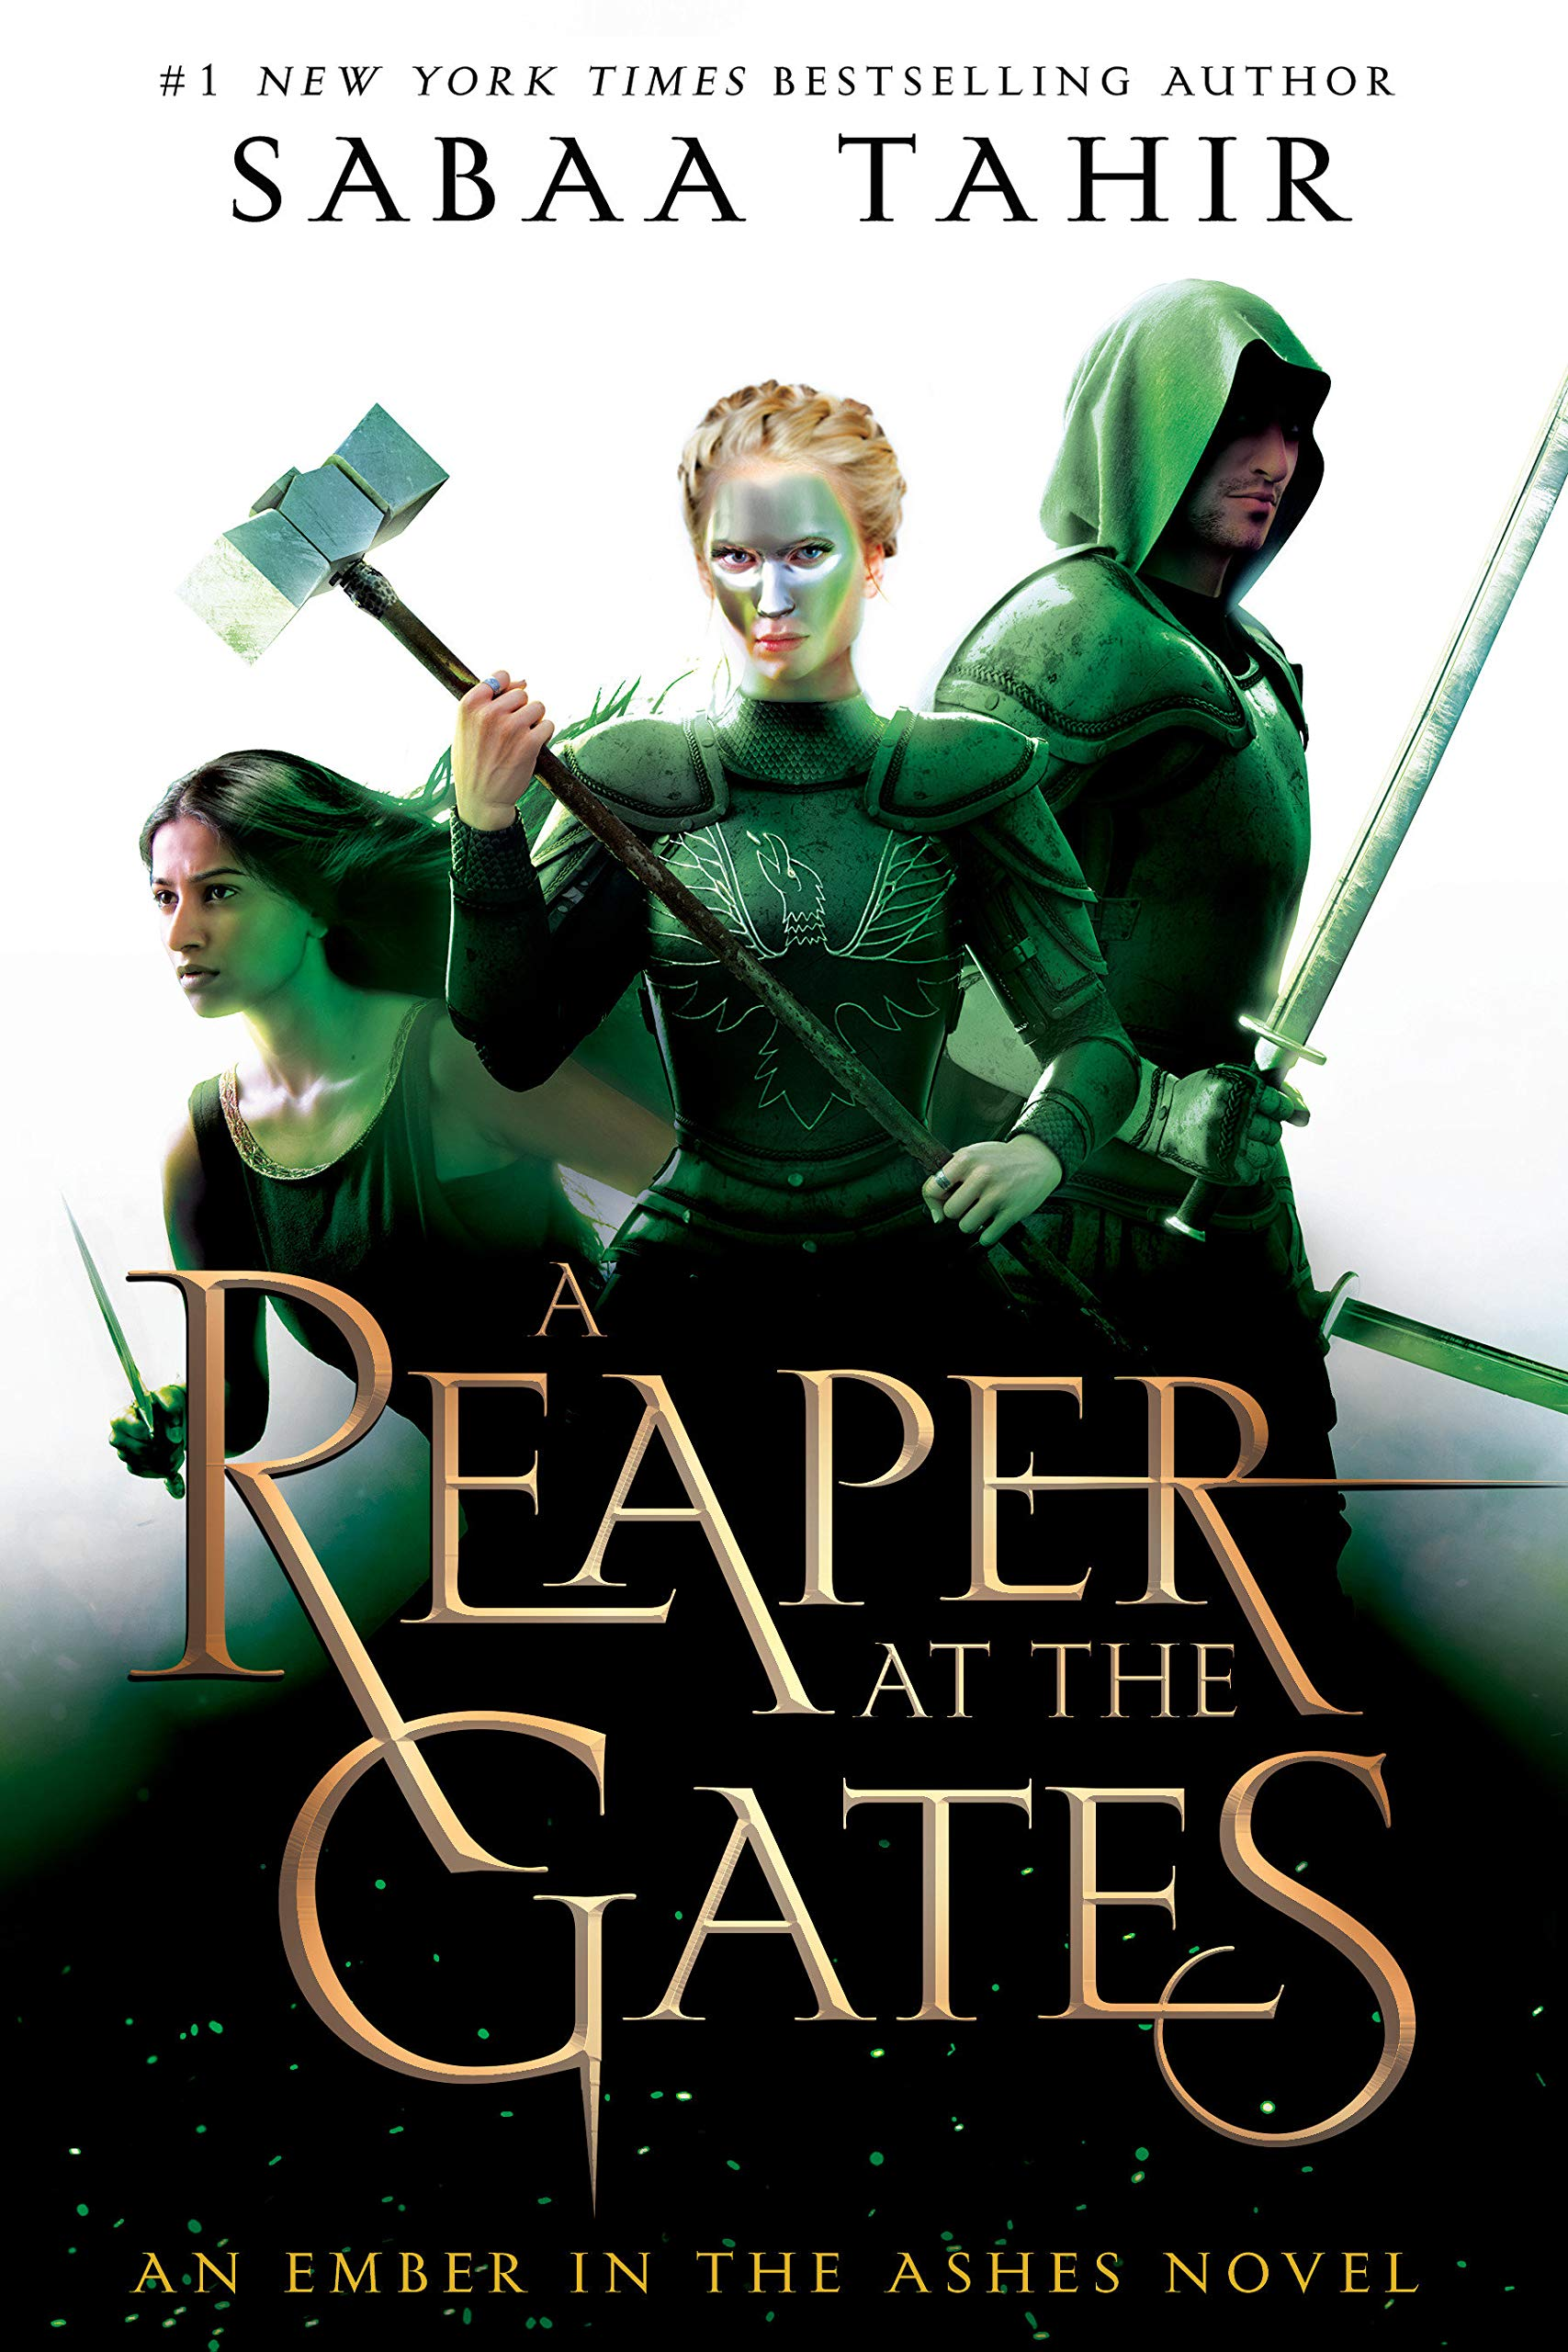 A Reaper at the Gates An Ember in the Ashes Sabaa Tahir book cover